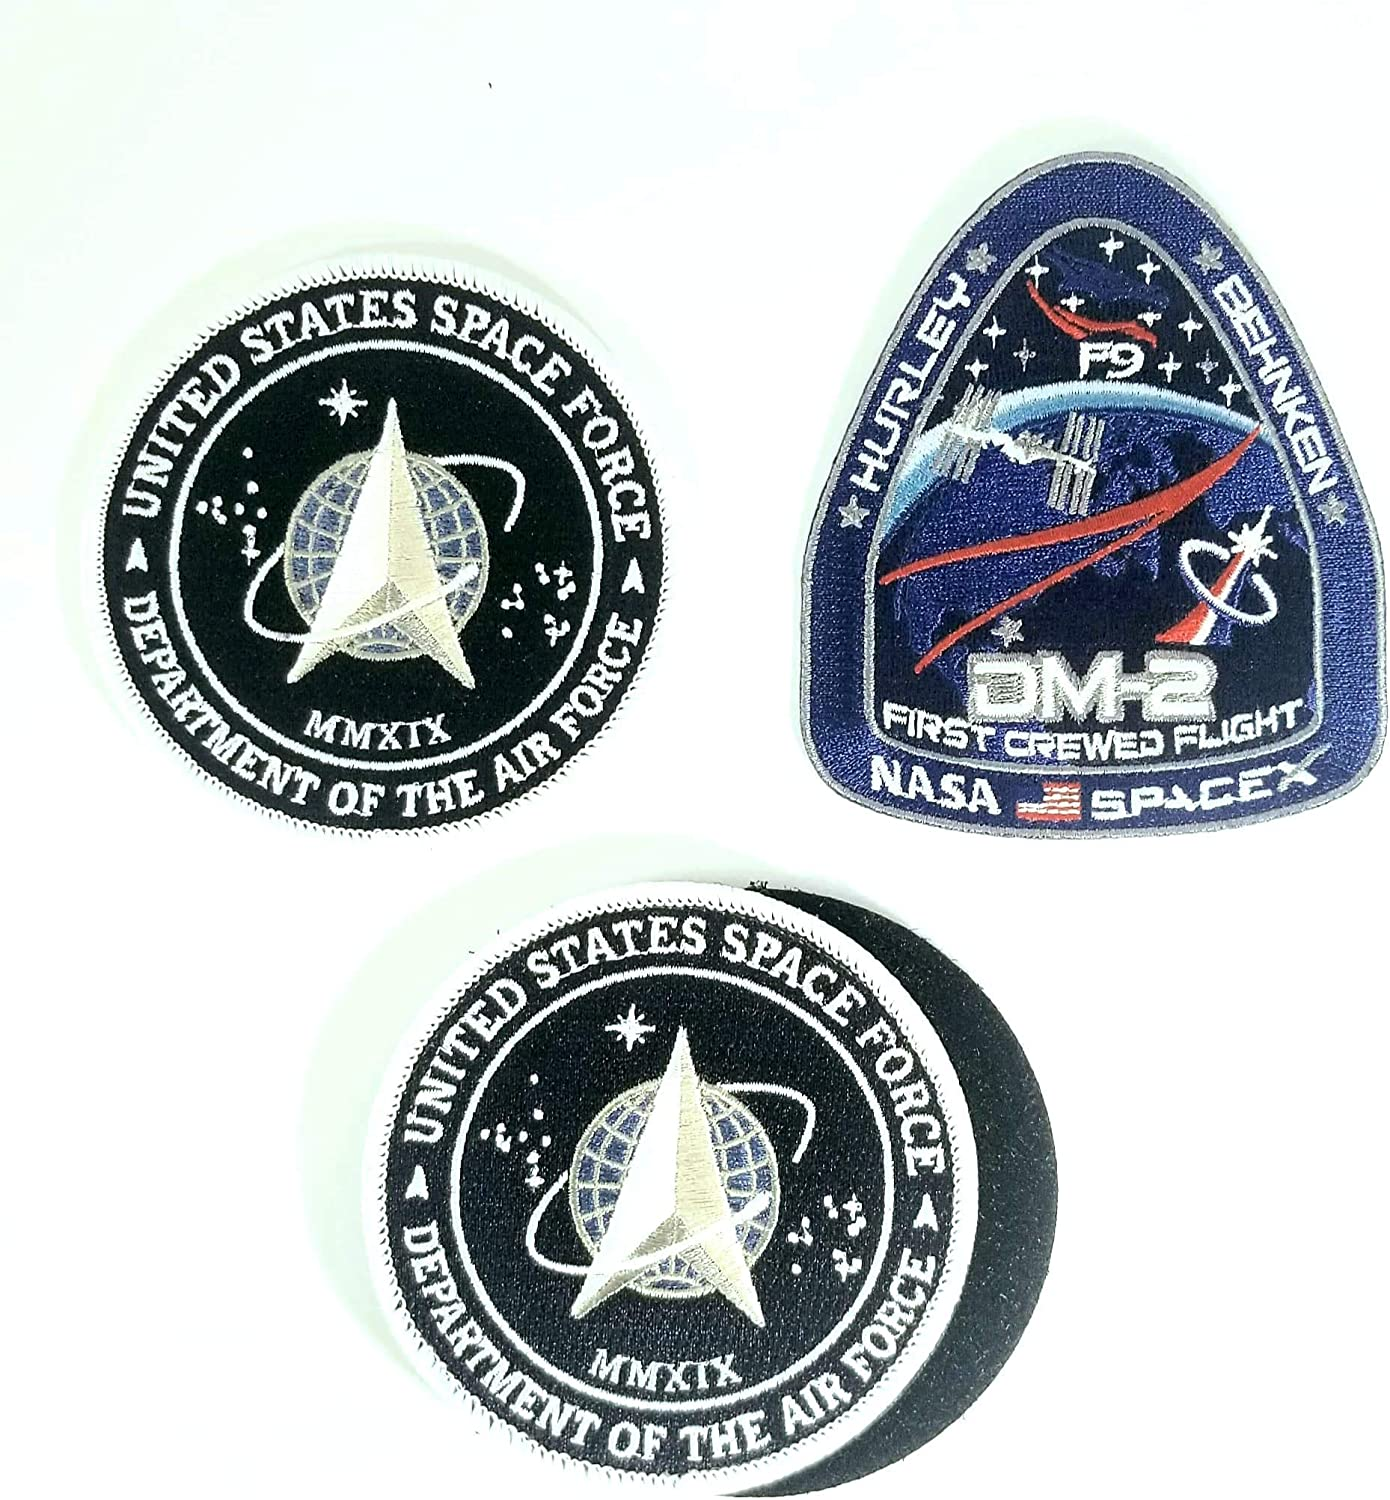 NEW EUTELSAT-2 SPACEX ORIGINAL MISSION PATCH FALCON 9 ISS NASA FREE SHIPPING